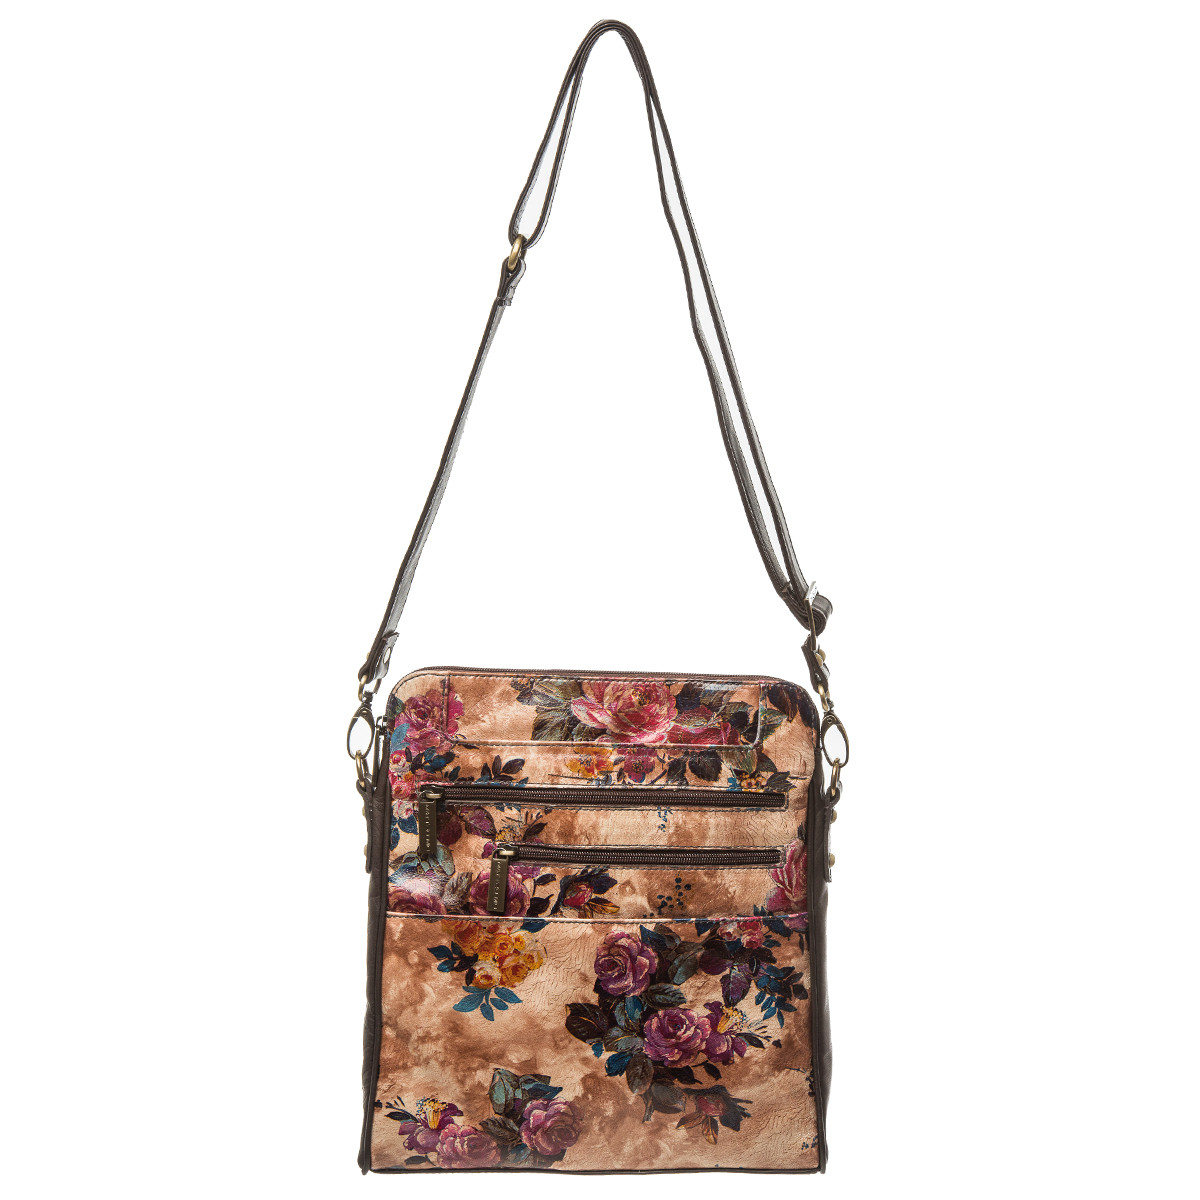 E.S. black and floral beige